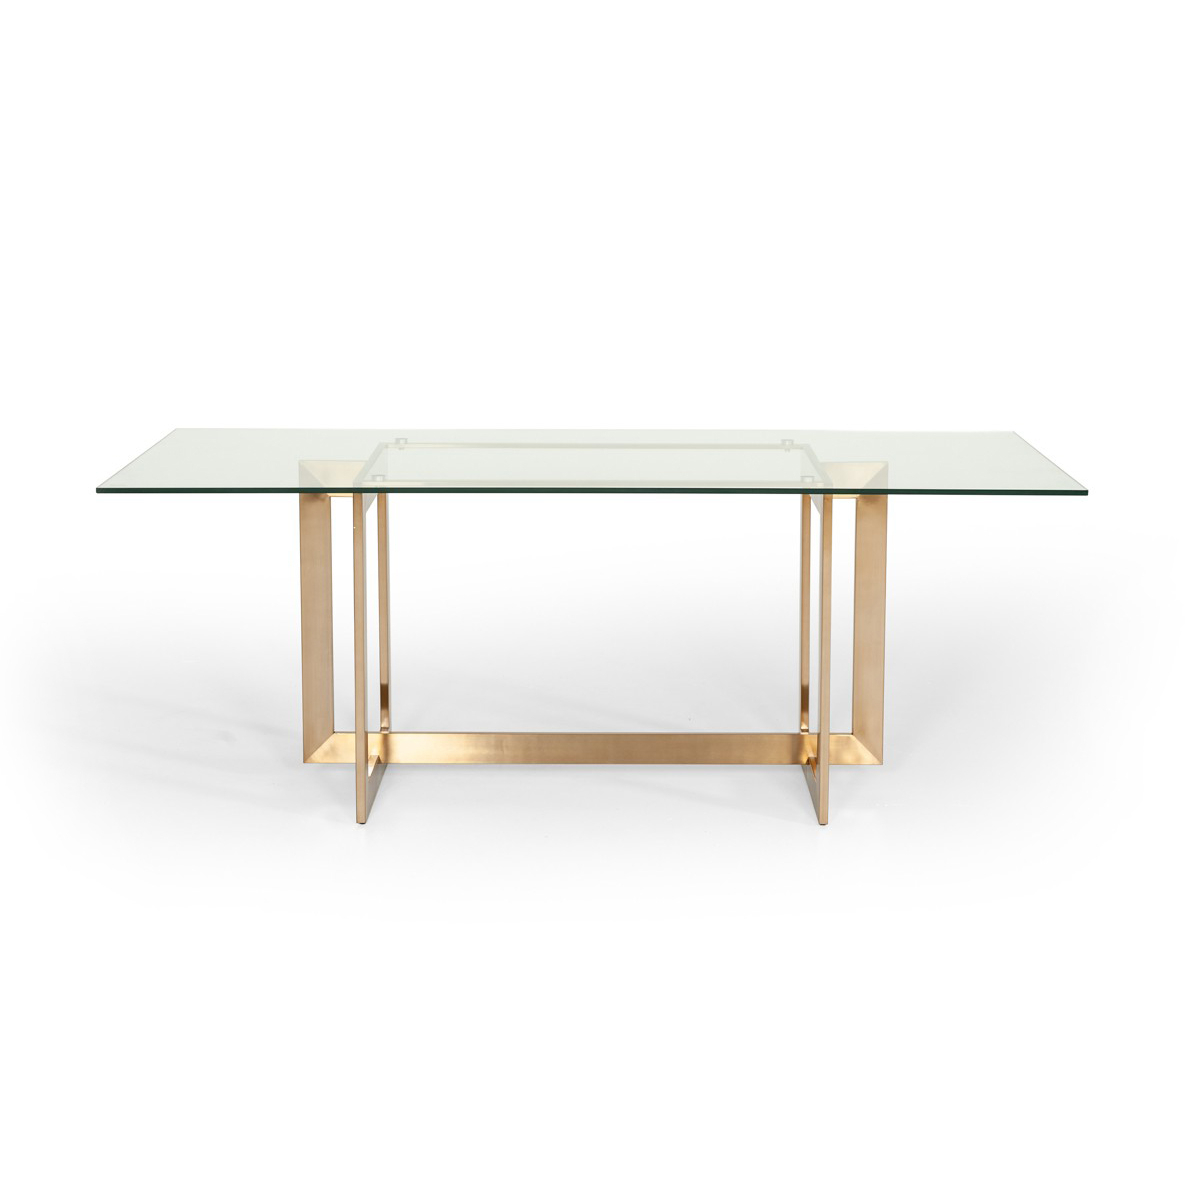 Dining Tables With Brushed Gold Stainless Finish Throughout Fashionable Lena Dining Table (View 10 of 30)